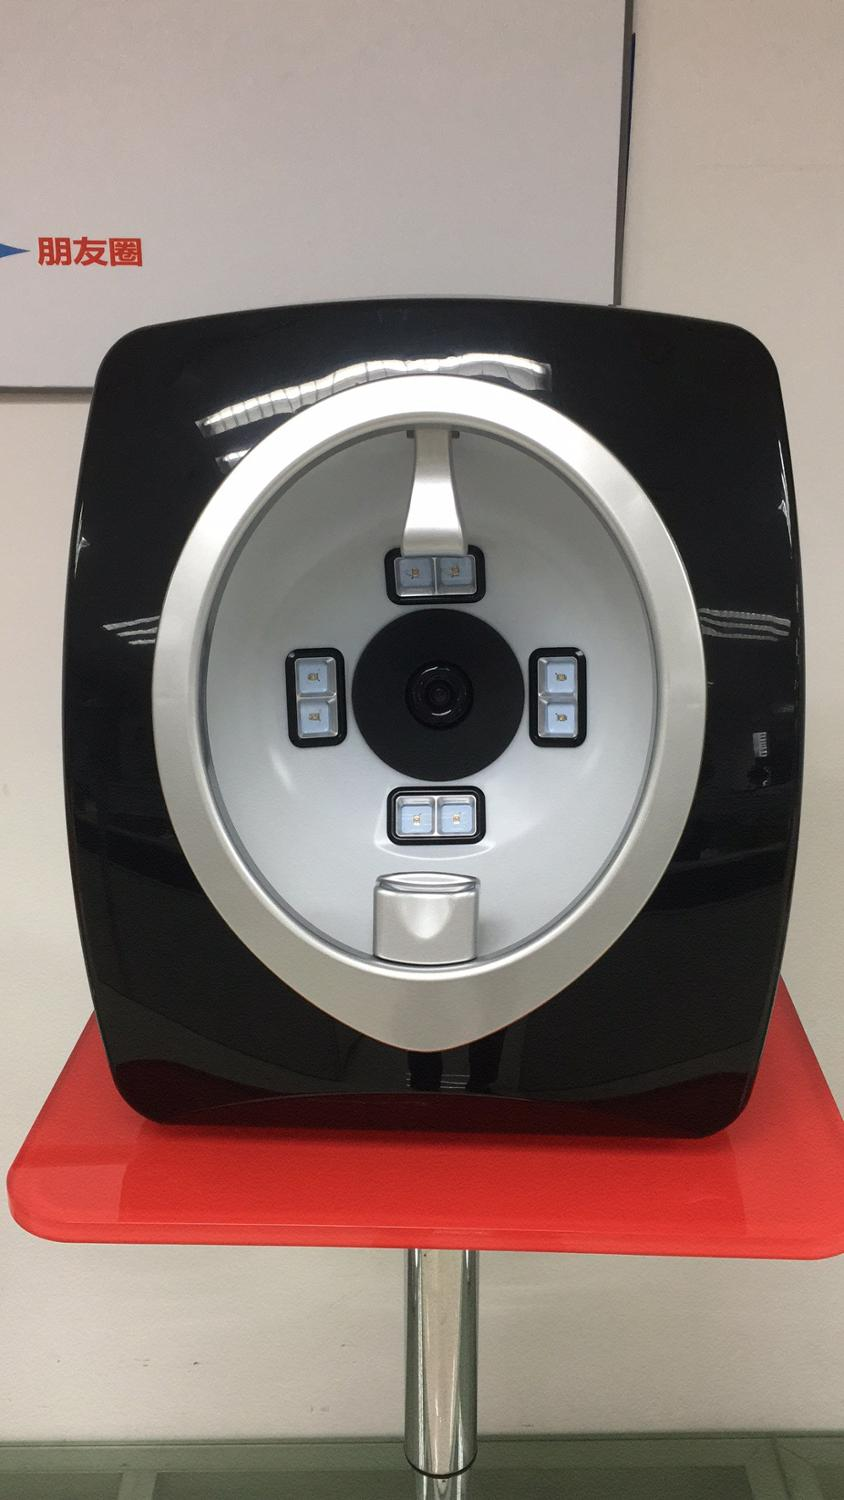 2020 New Sale Smart Skin Scanner Analyzer/Magic Mirror Facial Analysis Machine Digital Image Technologies For Beauty Machine